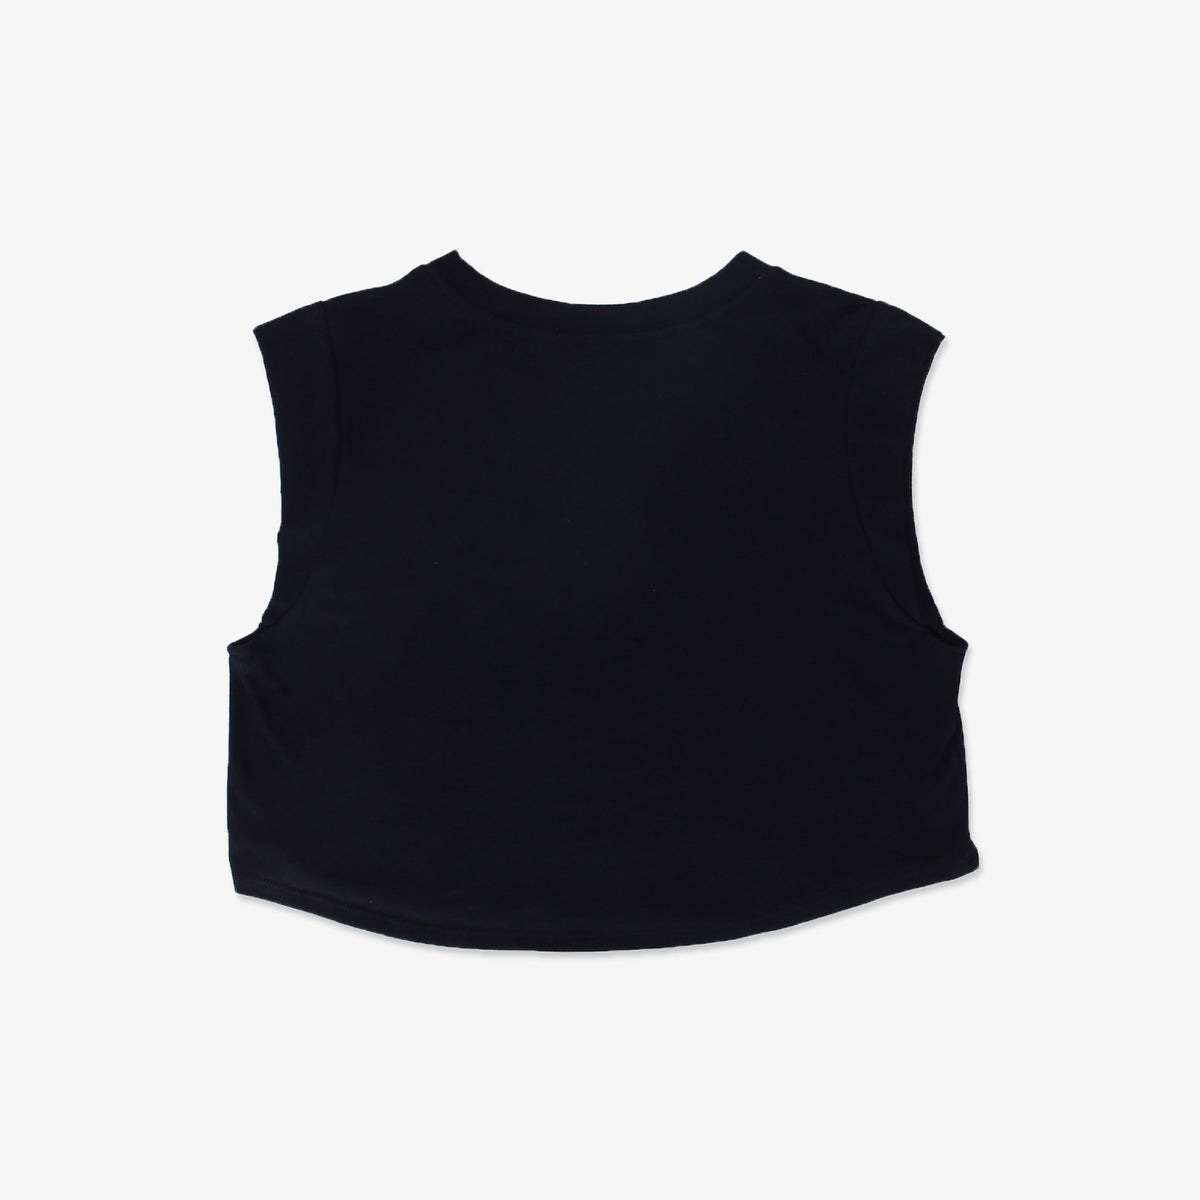 South Cali Cropped Tee - Black